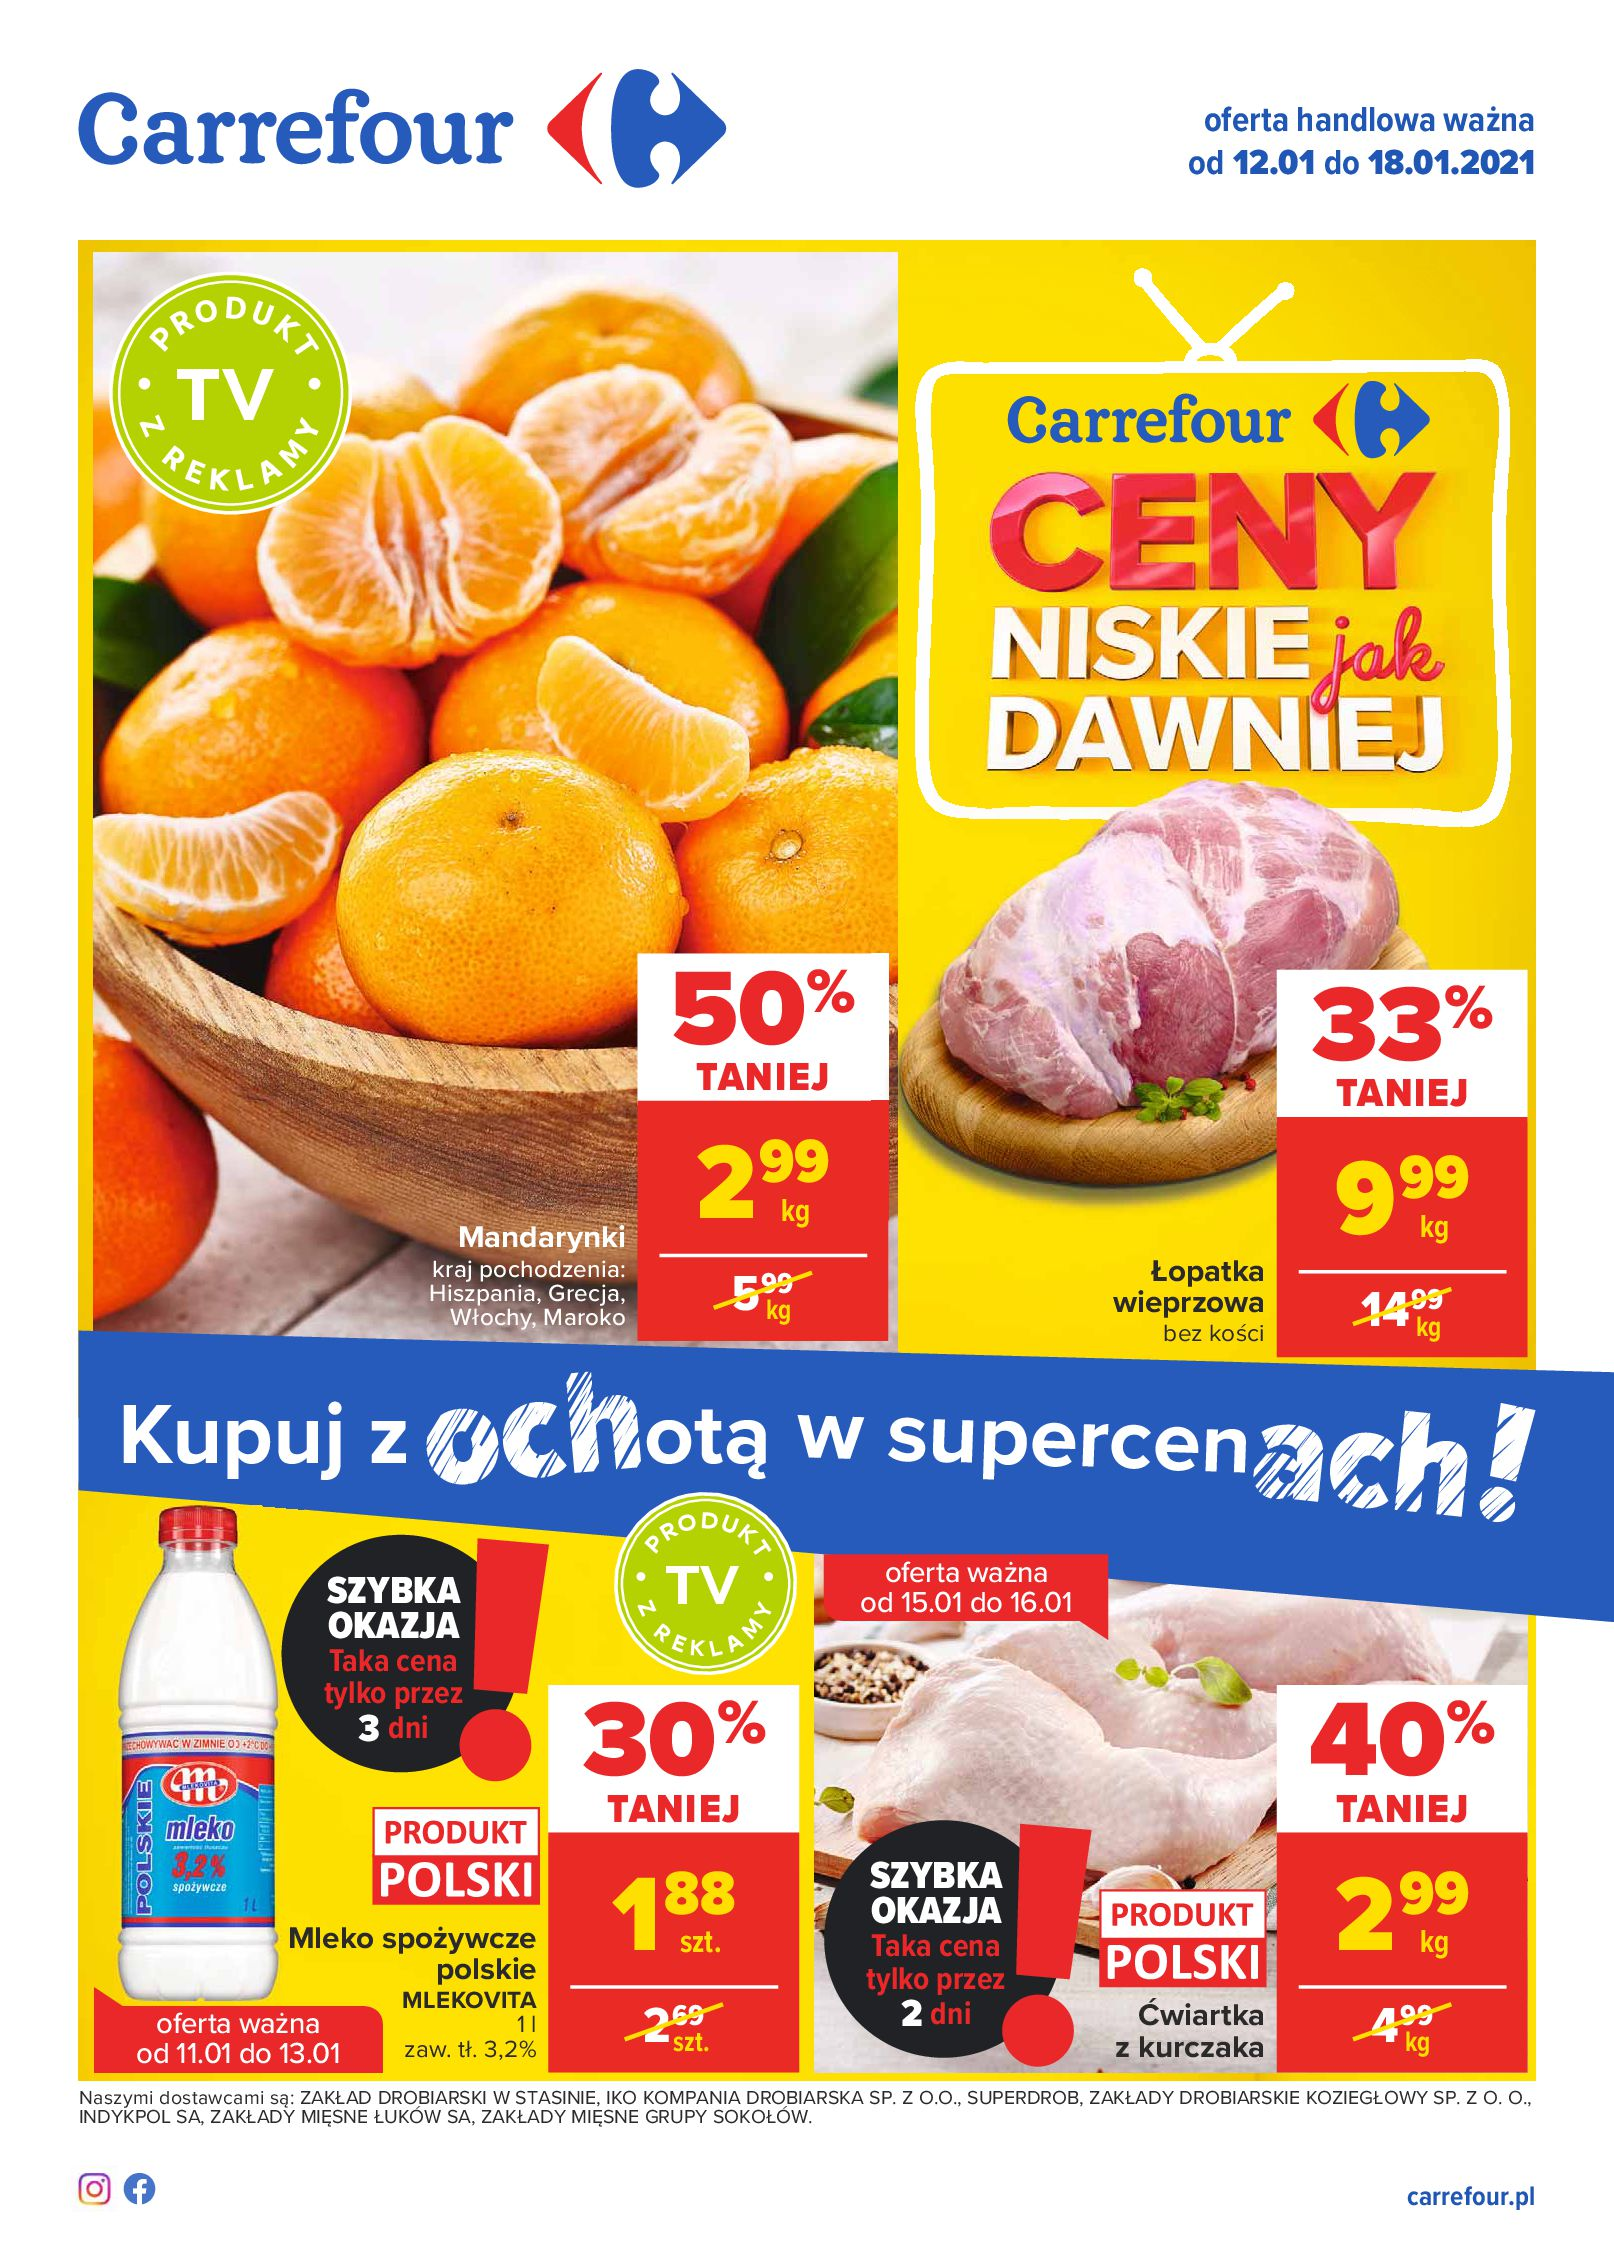 Carrefour:  Gazetka Carrefour 11.01.2021